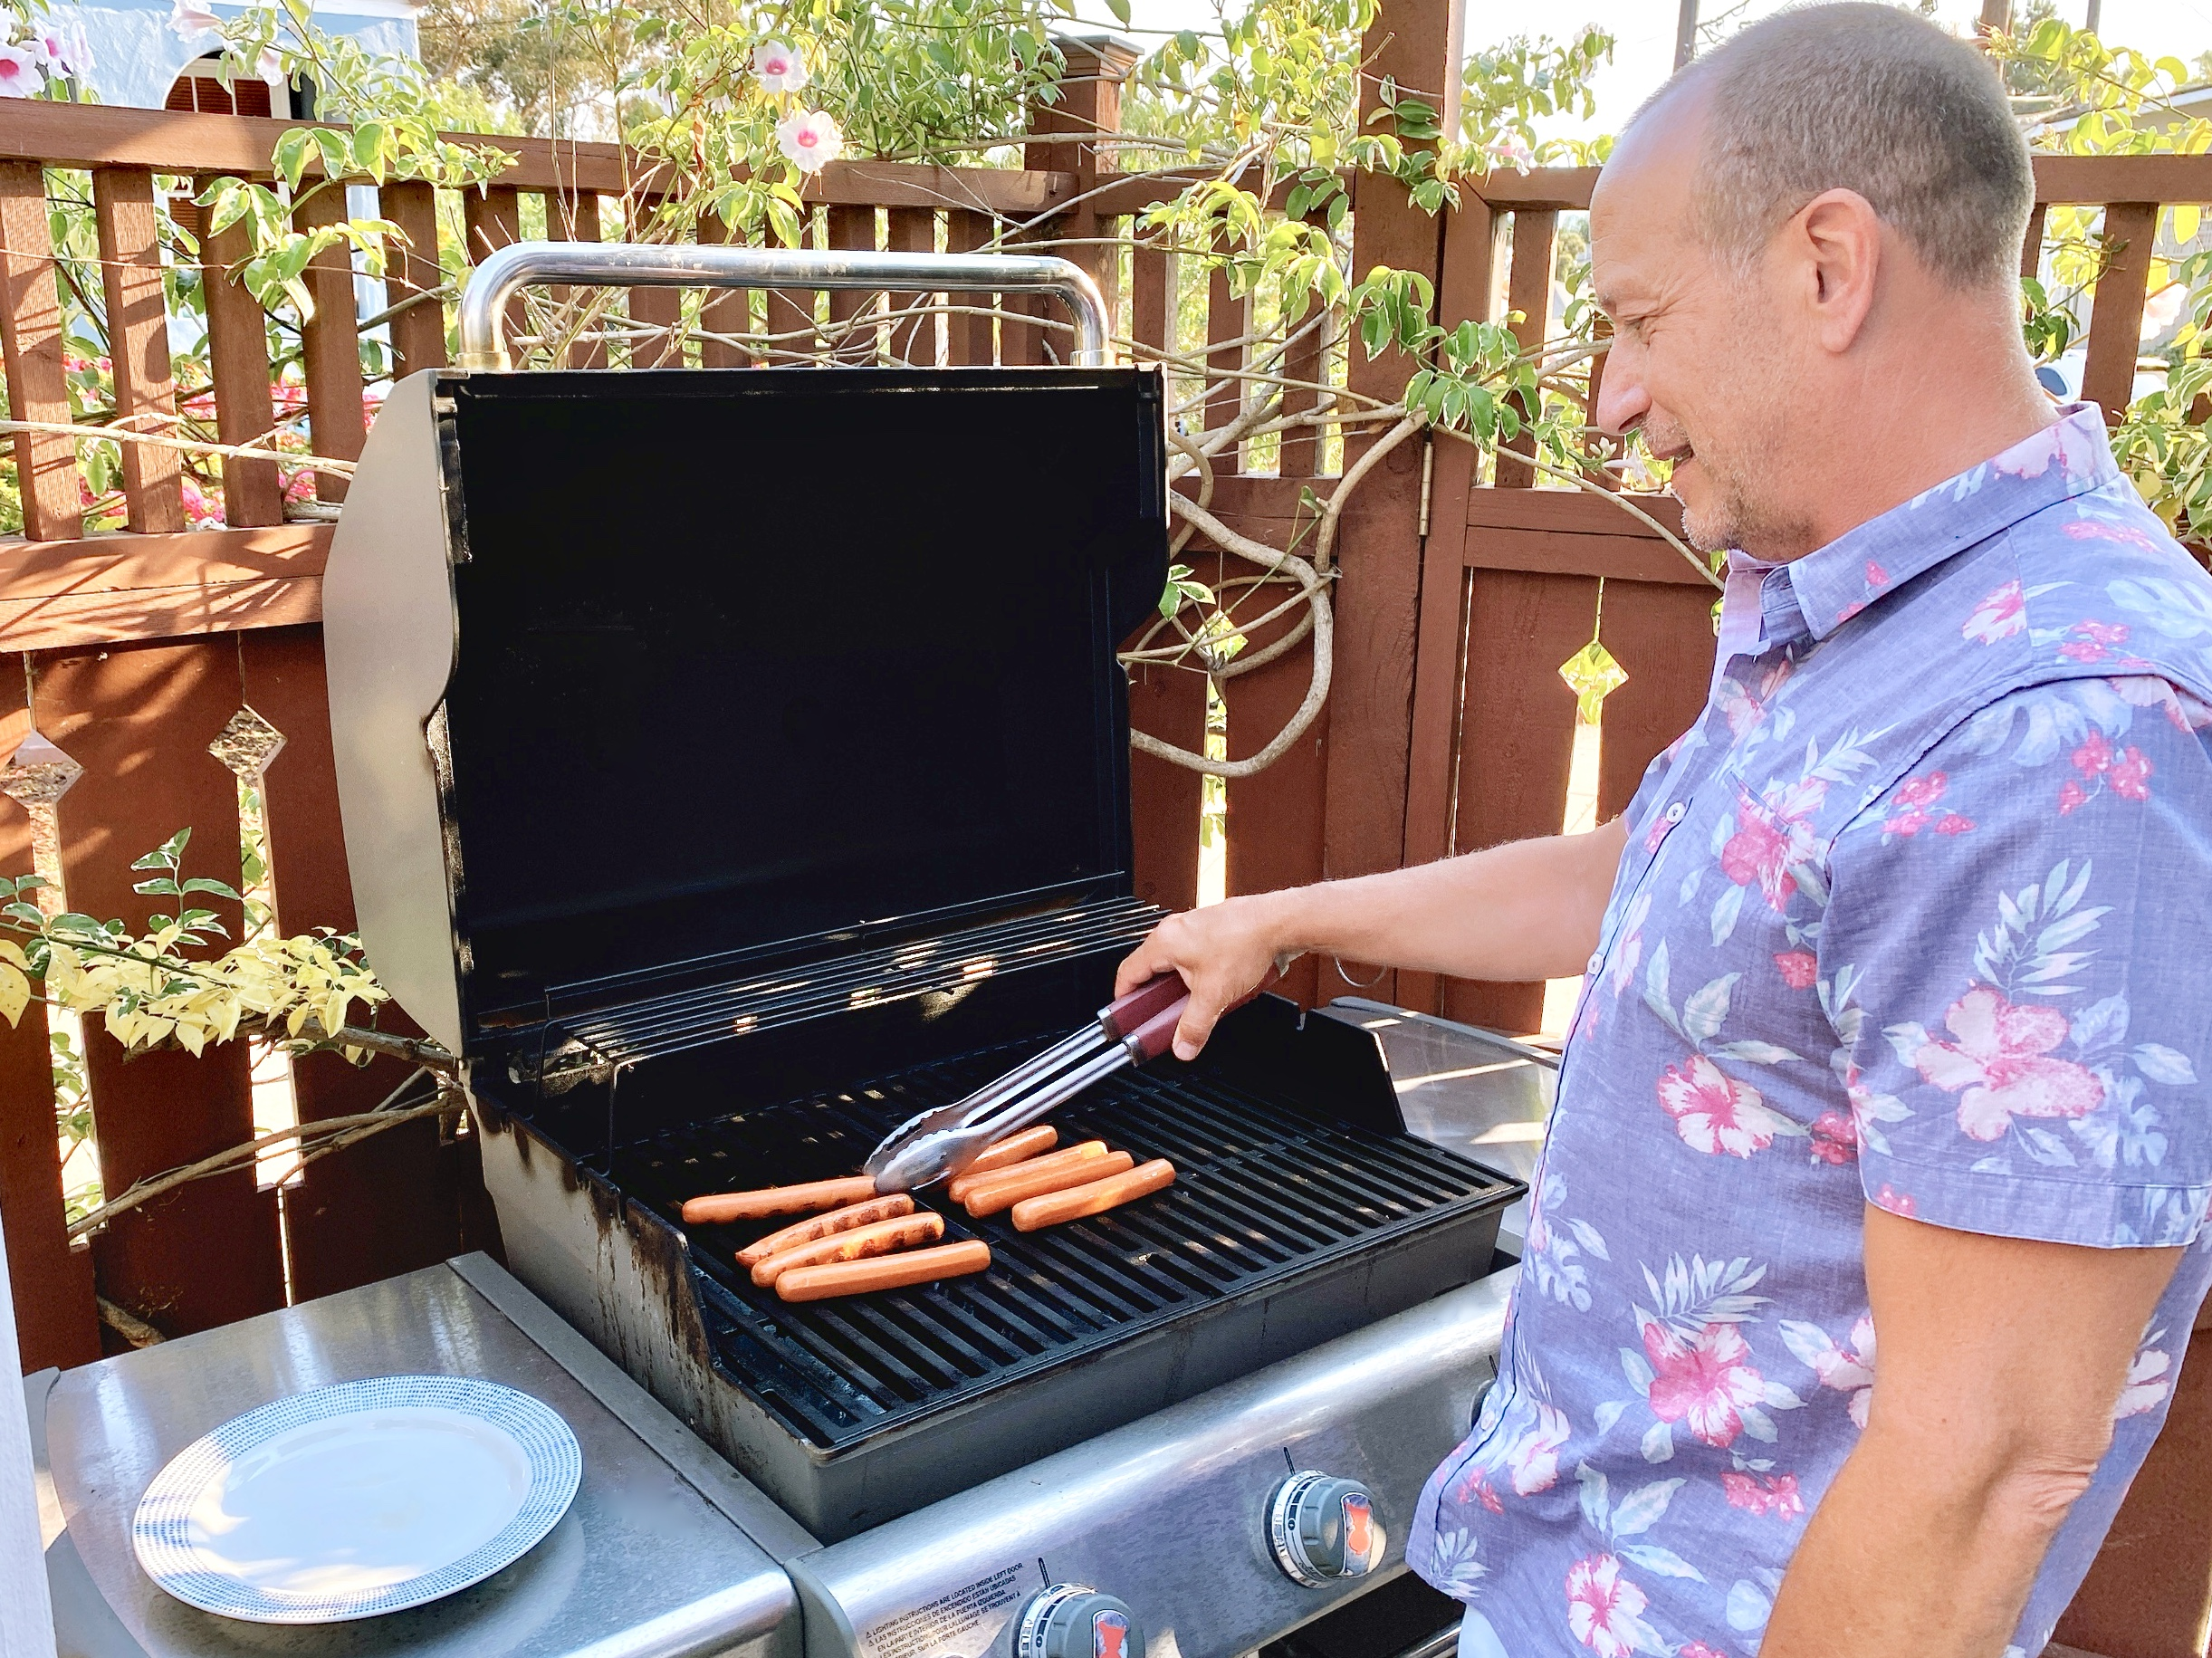 man grilling hot dogs on patio BBQ